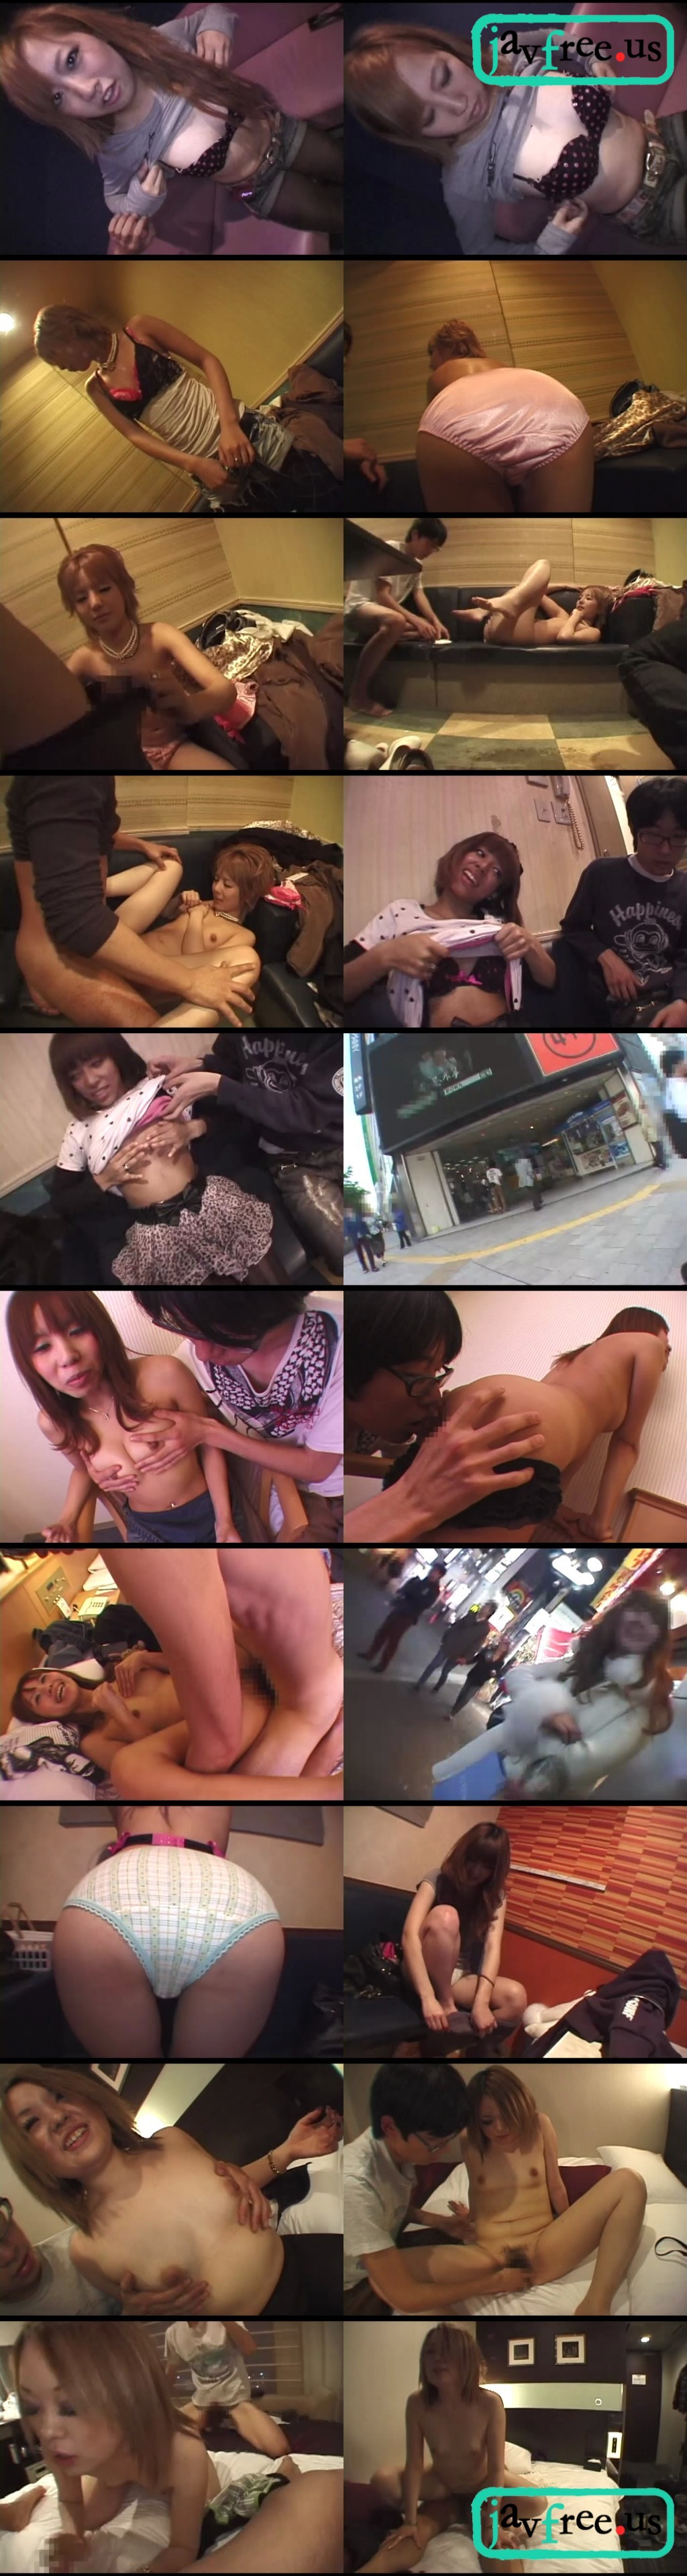 [MDUD-131] 石橋渉の素人生ドル 99 - image  on https://javfree.me